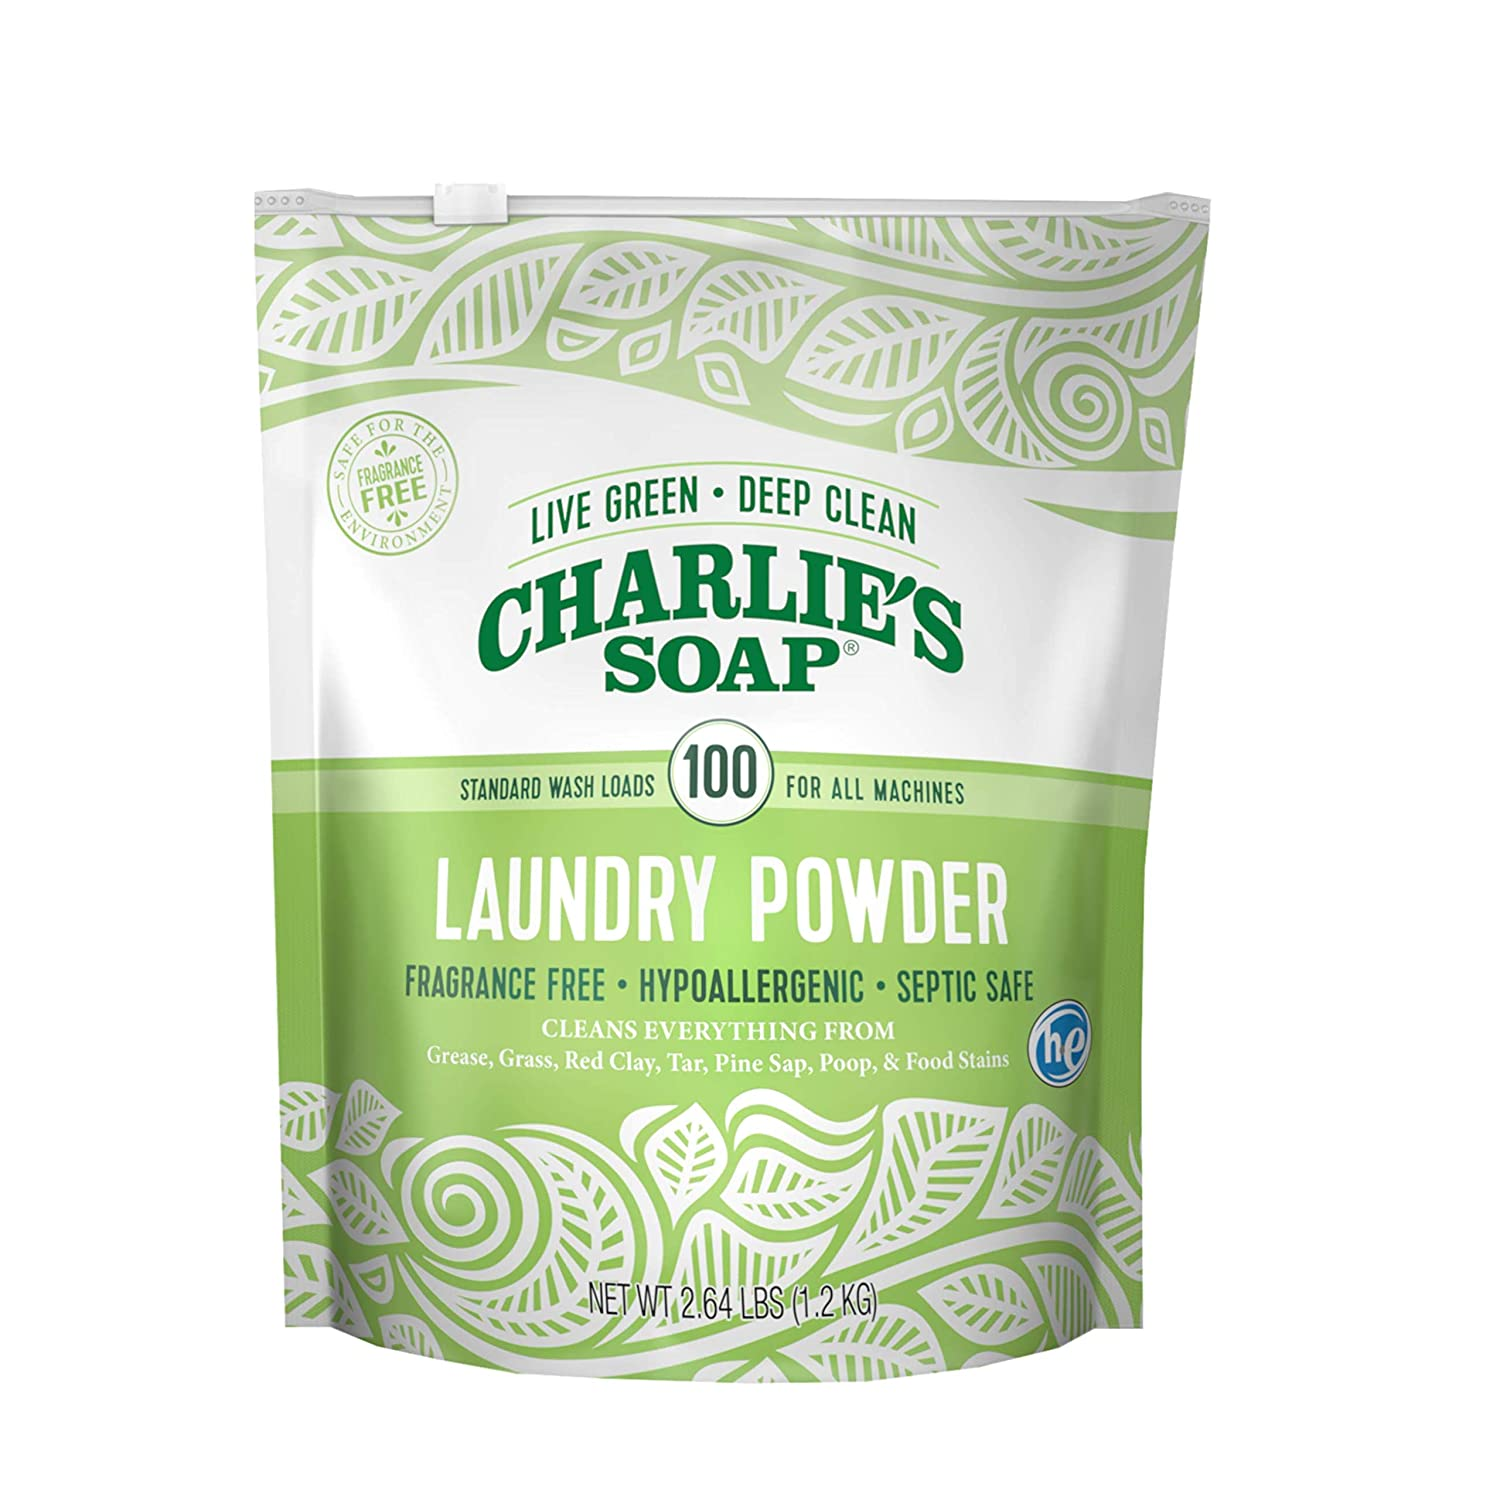 e2d2de125fa Charlie's Soap – Fragrance Free Powdered Laundry Detergent – 100 Loads  (2.64 lbs, 1 Pack)